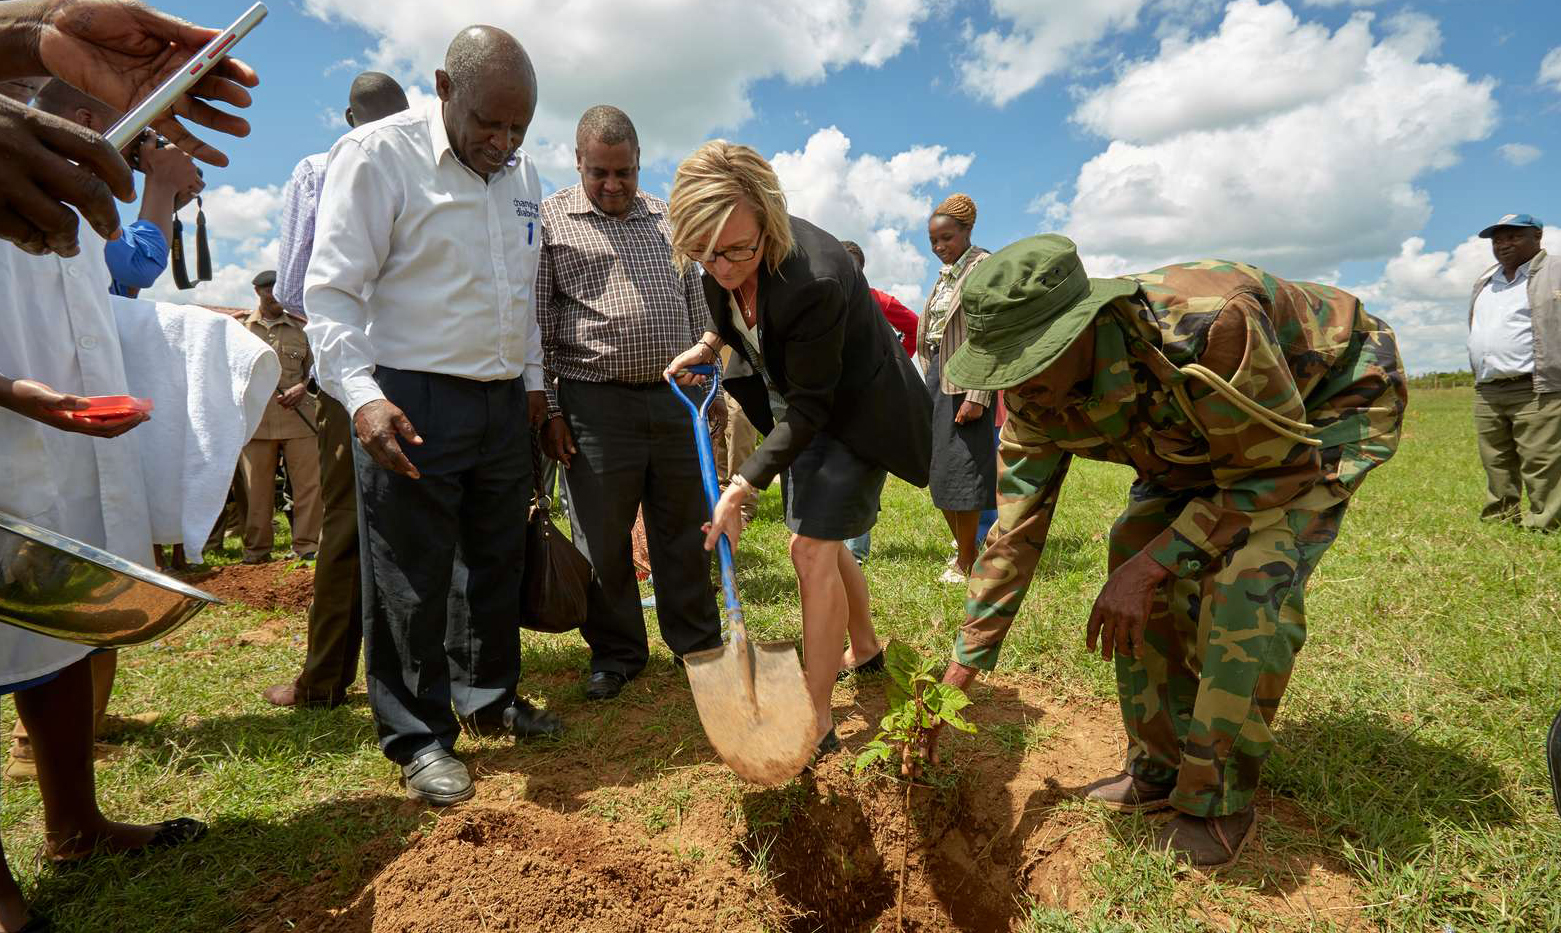 A Caucasian woman, WDF's Head of Programmes Hanne Strandgaard, digging a hole in the ground for a tree. She is surrounded by African men.